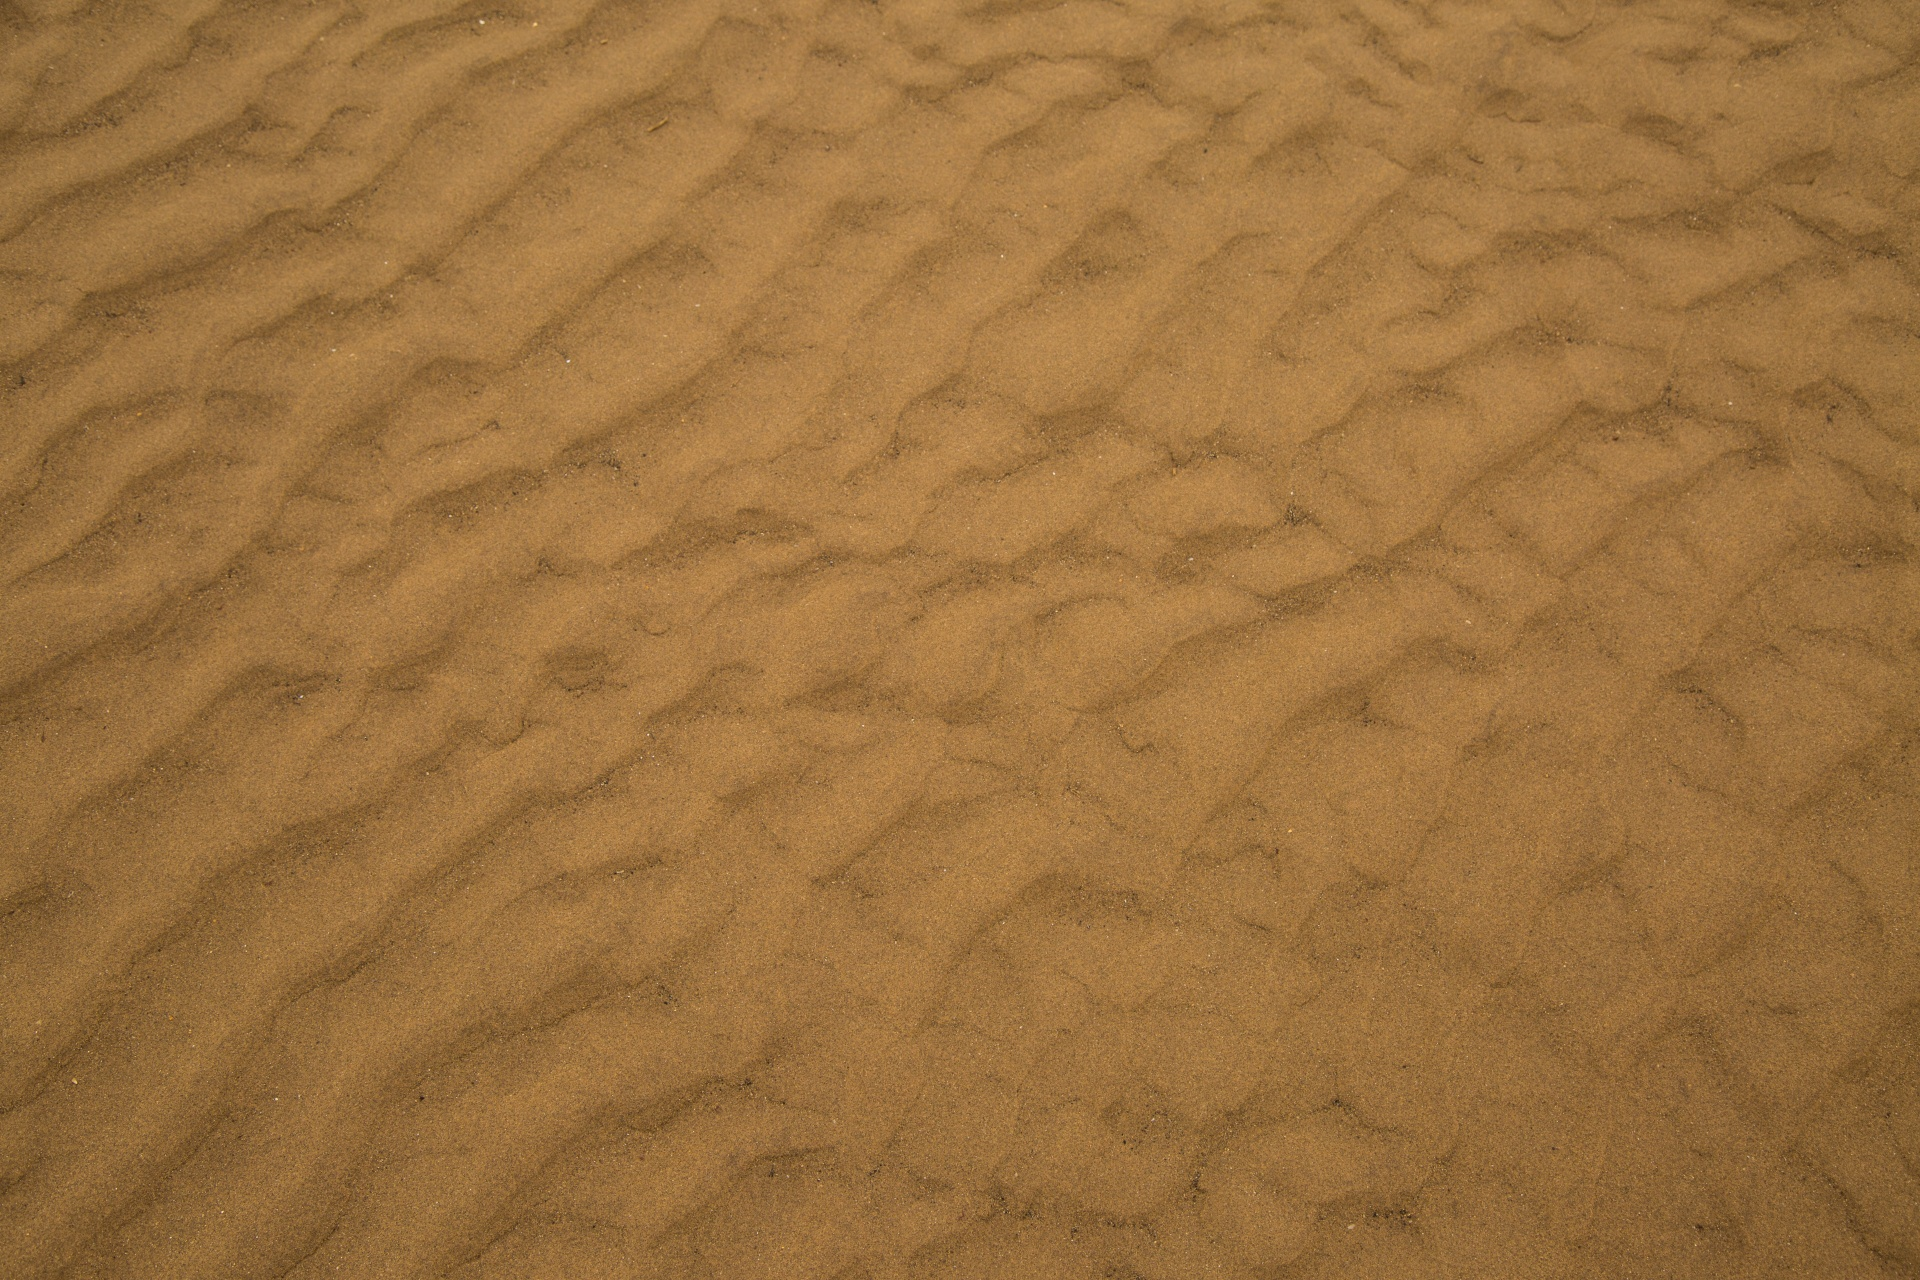 Sand Texture Free Stock Photo  Public Domain Pictures